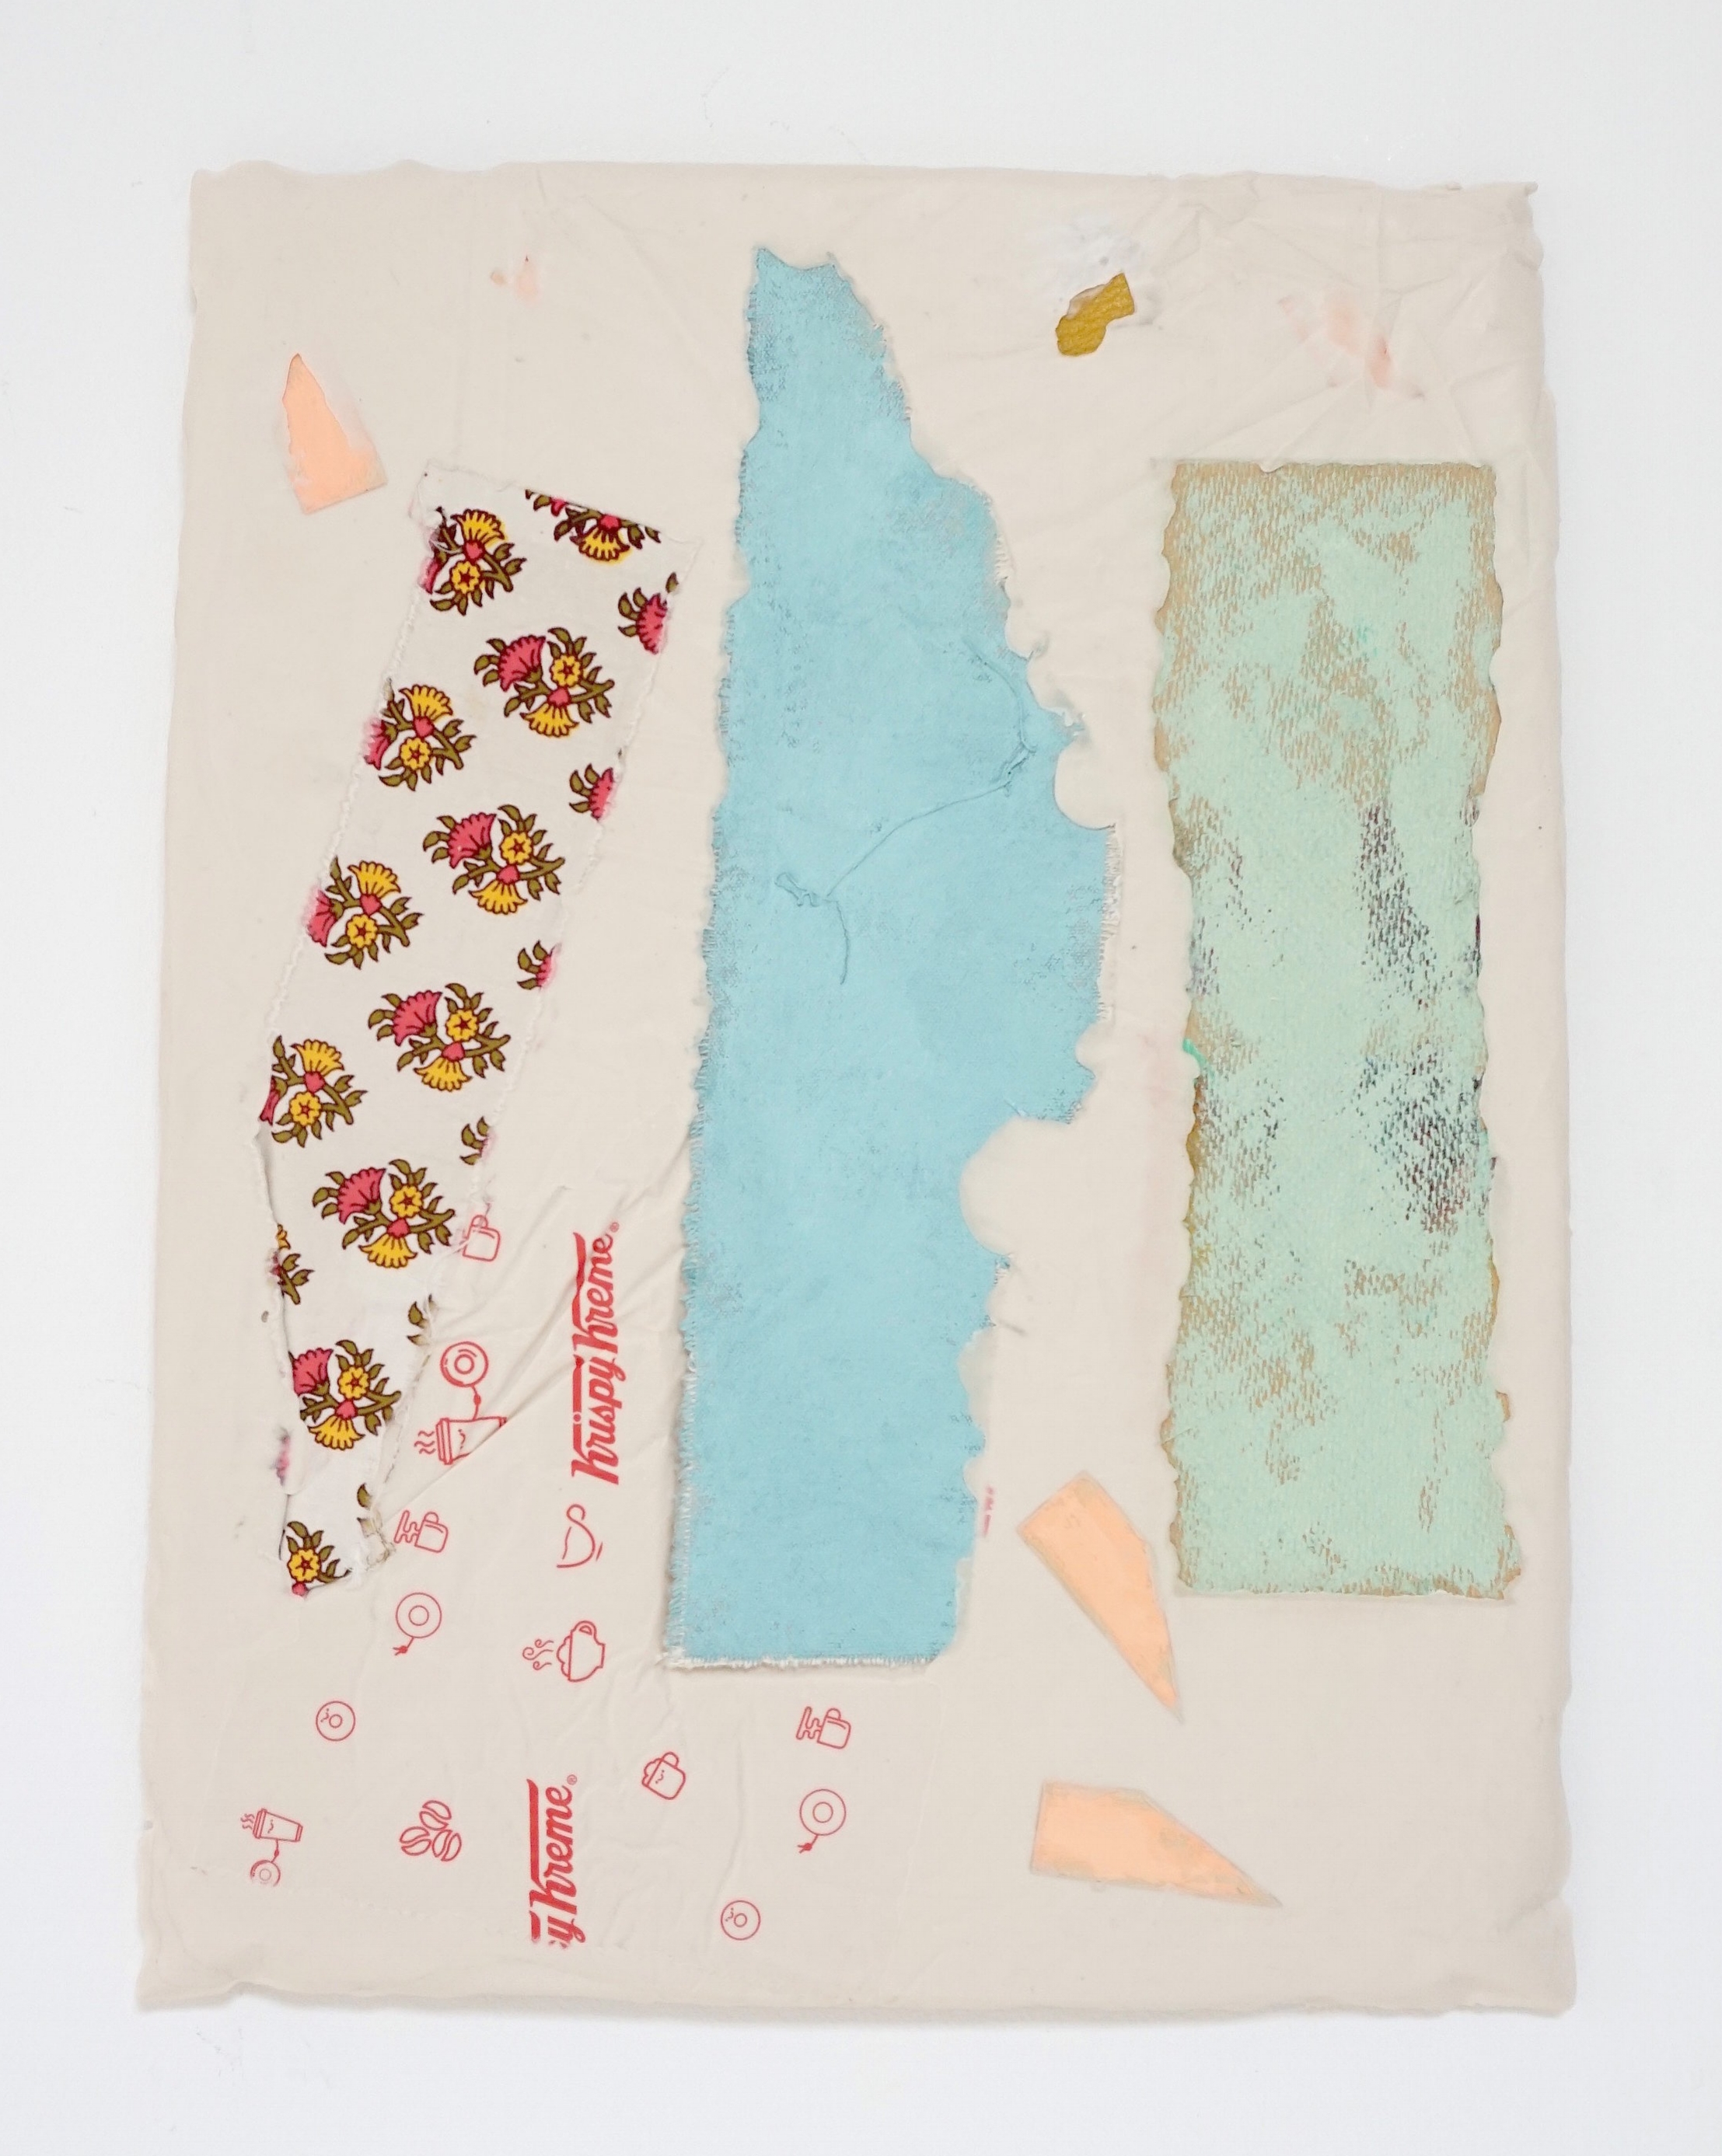 Untitled Fragment (found fabric, Krispy Kreme wrapper, pink wedges, canvas, wood) | Composite and Mixed Media | 42 x 32 cm